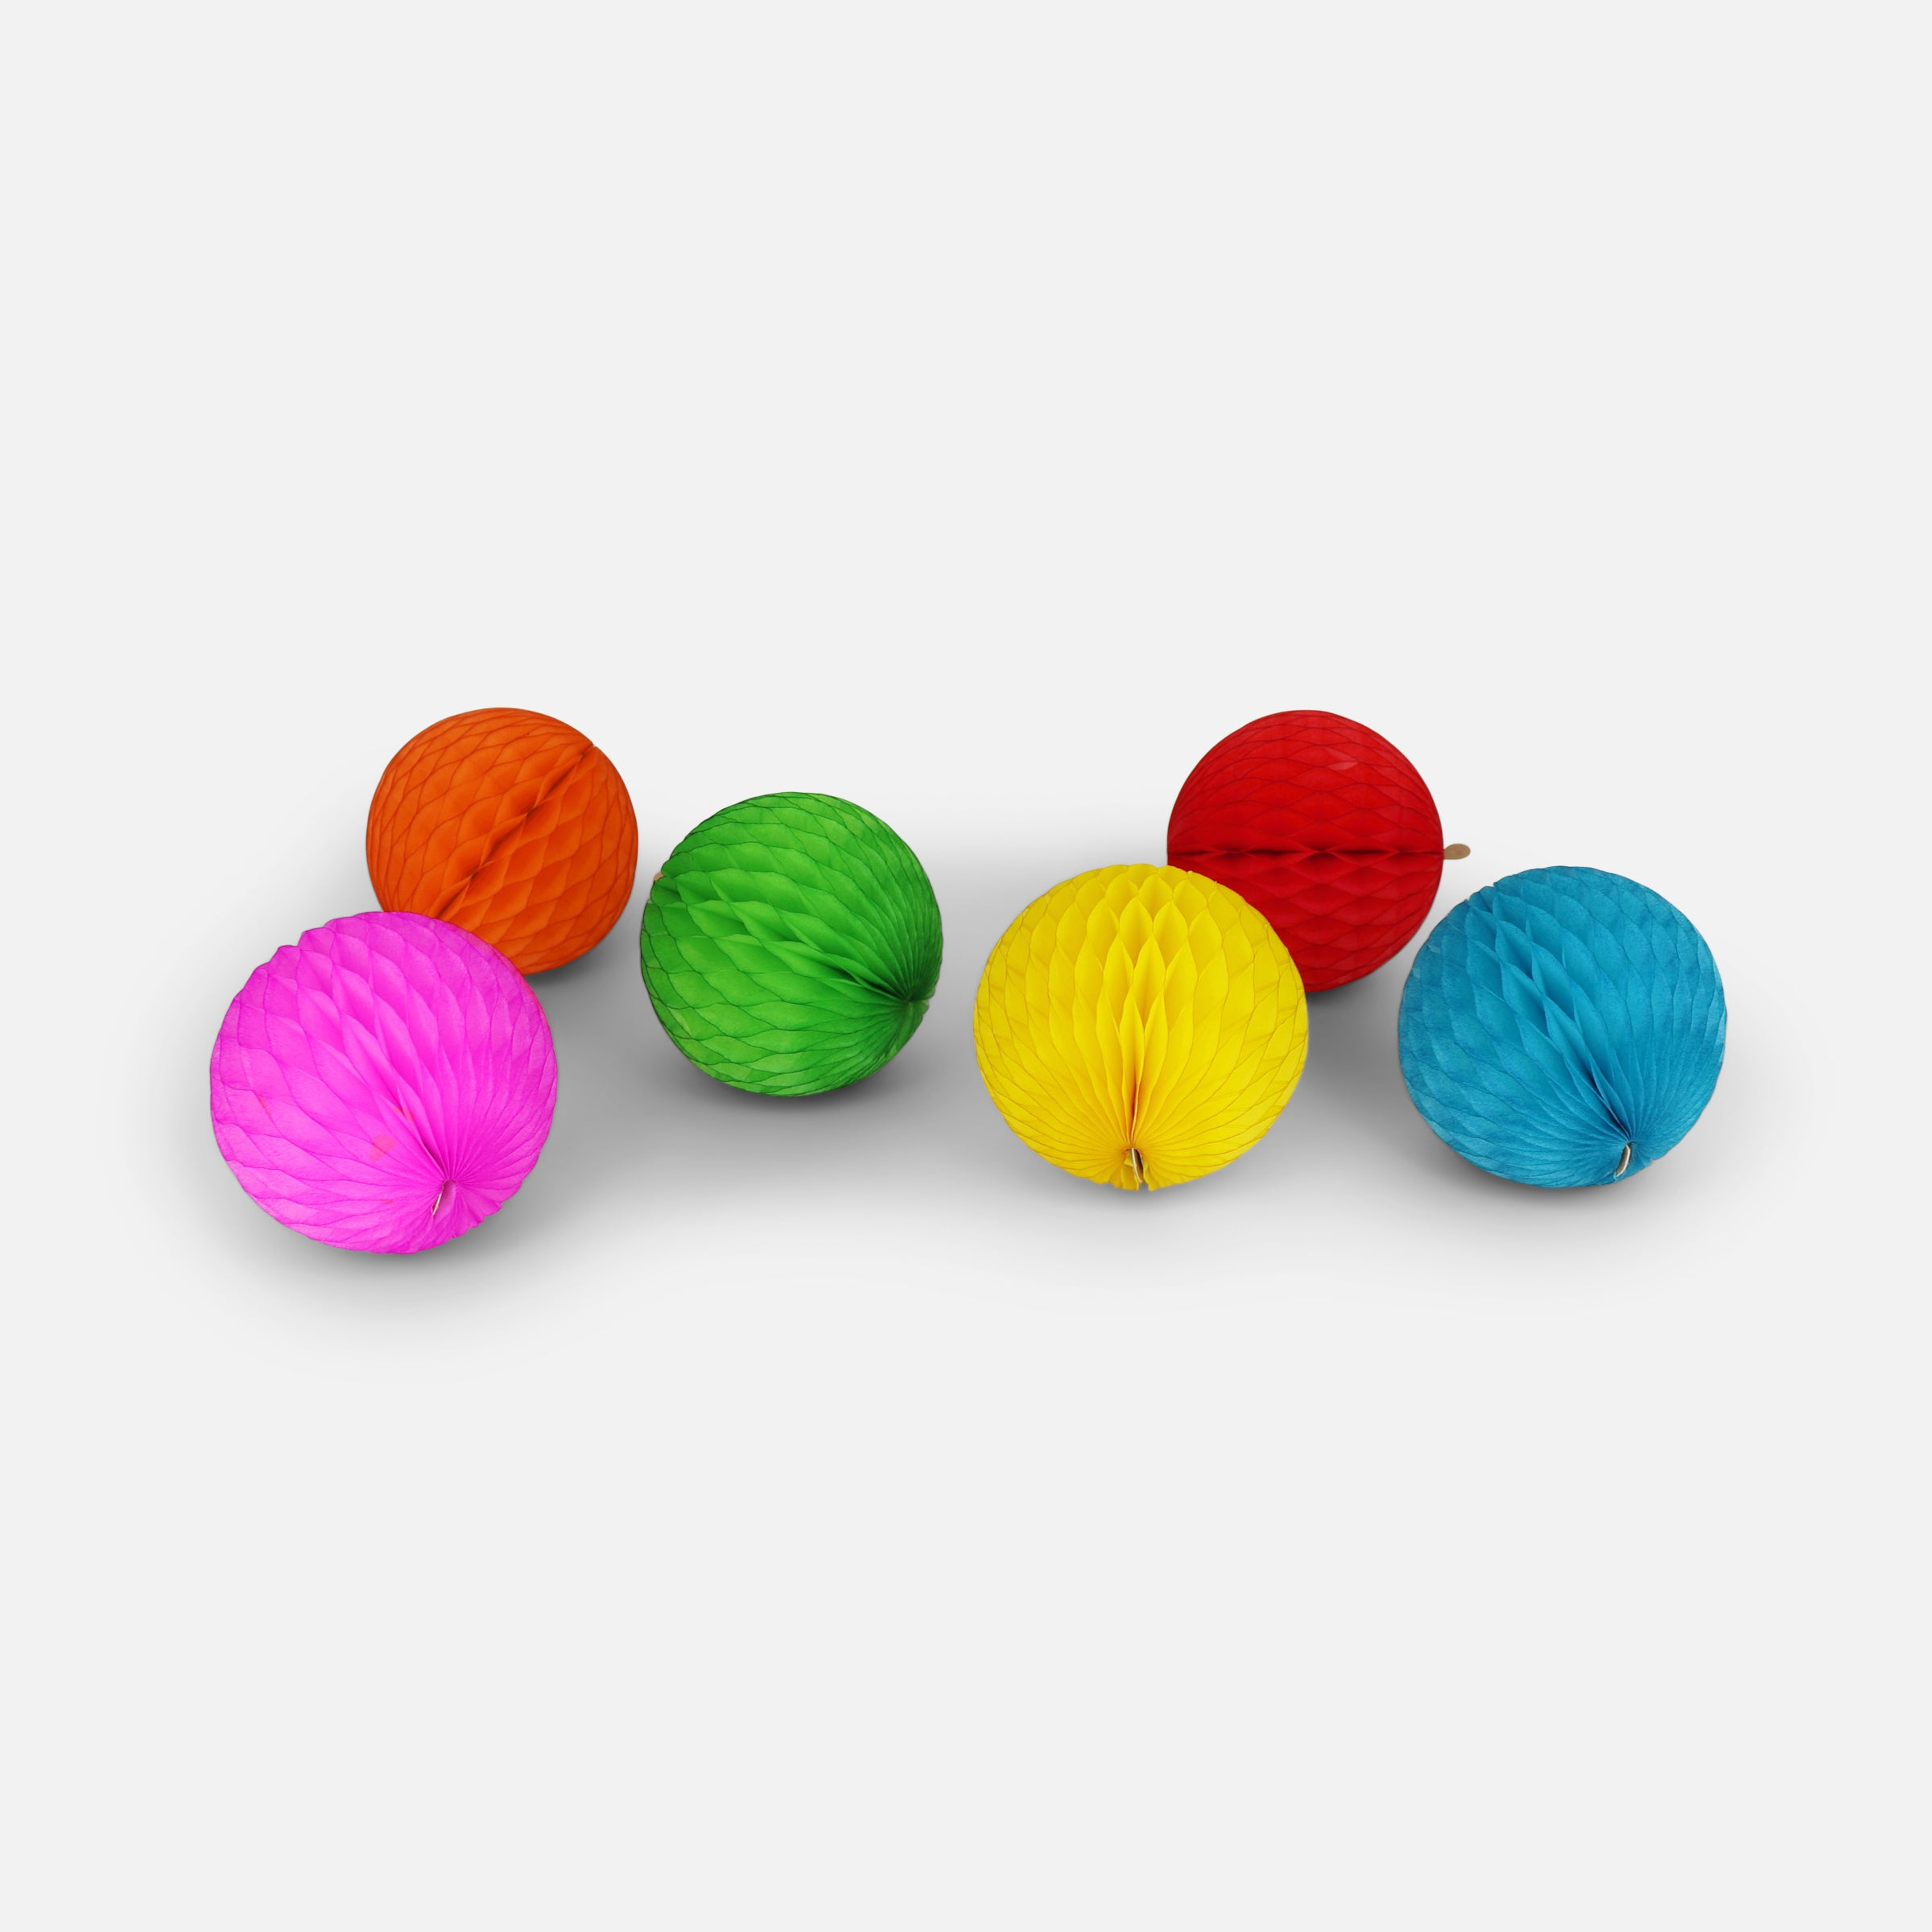 Honeycomb Ball 5cm Pack of 6, Rainbow